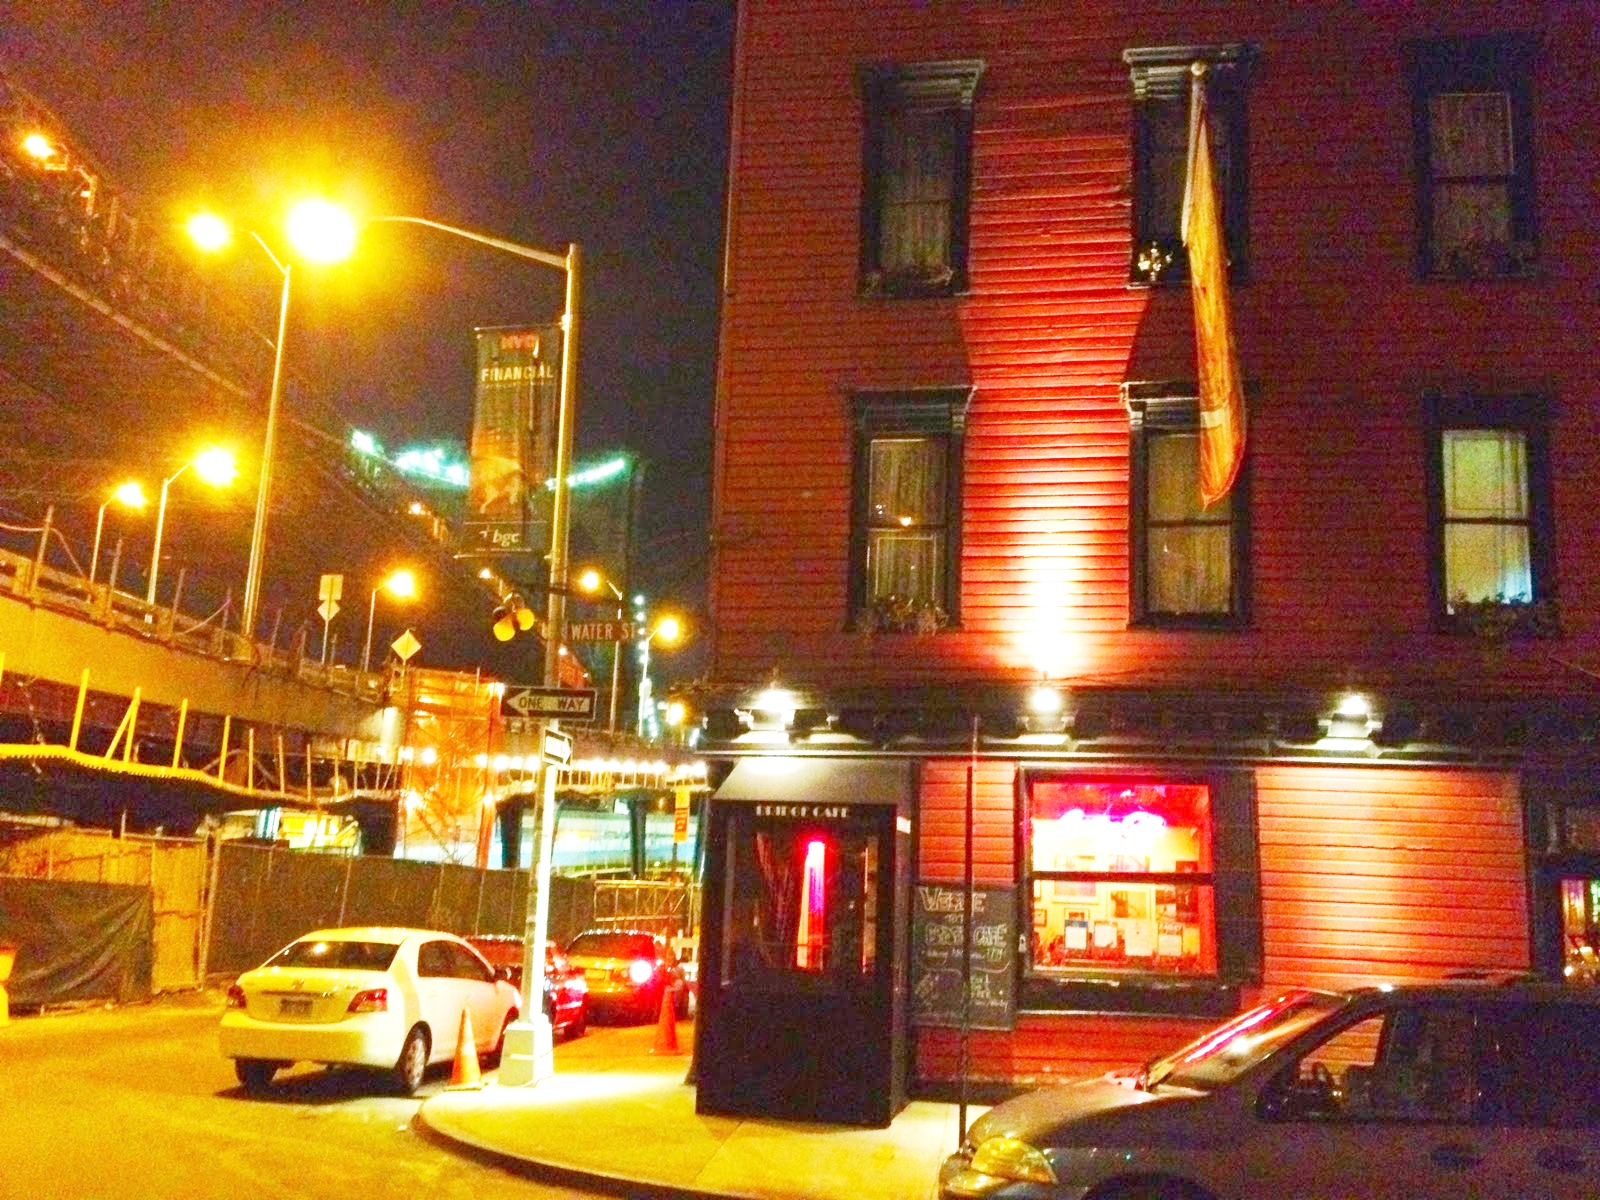 Bridge Cafe is an historic restaurant and bar located at 279 Water Street in the South Street Seaport area of Manhattan.